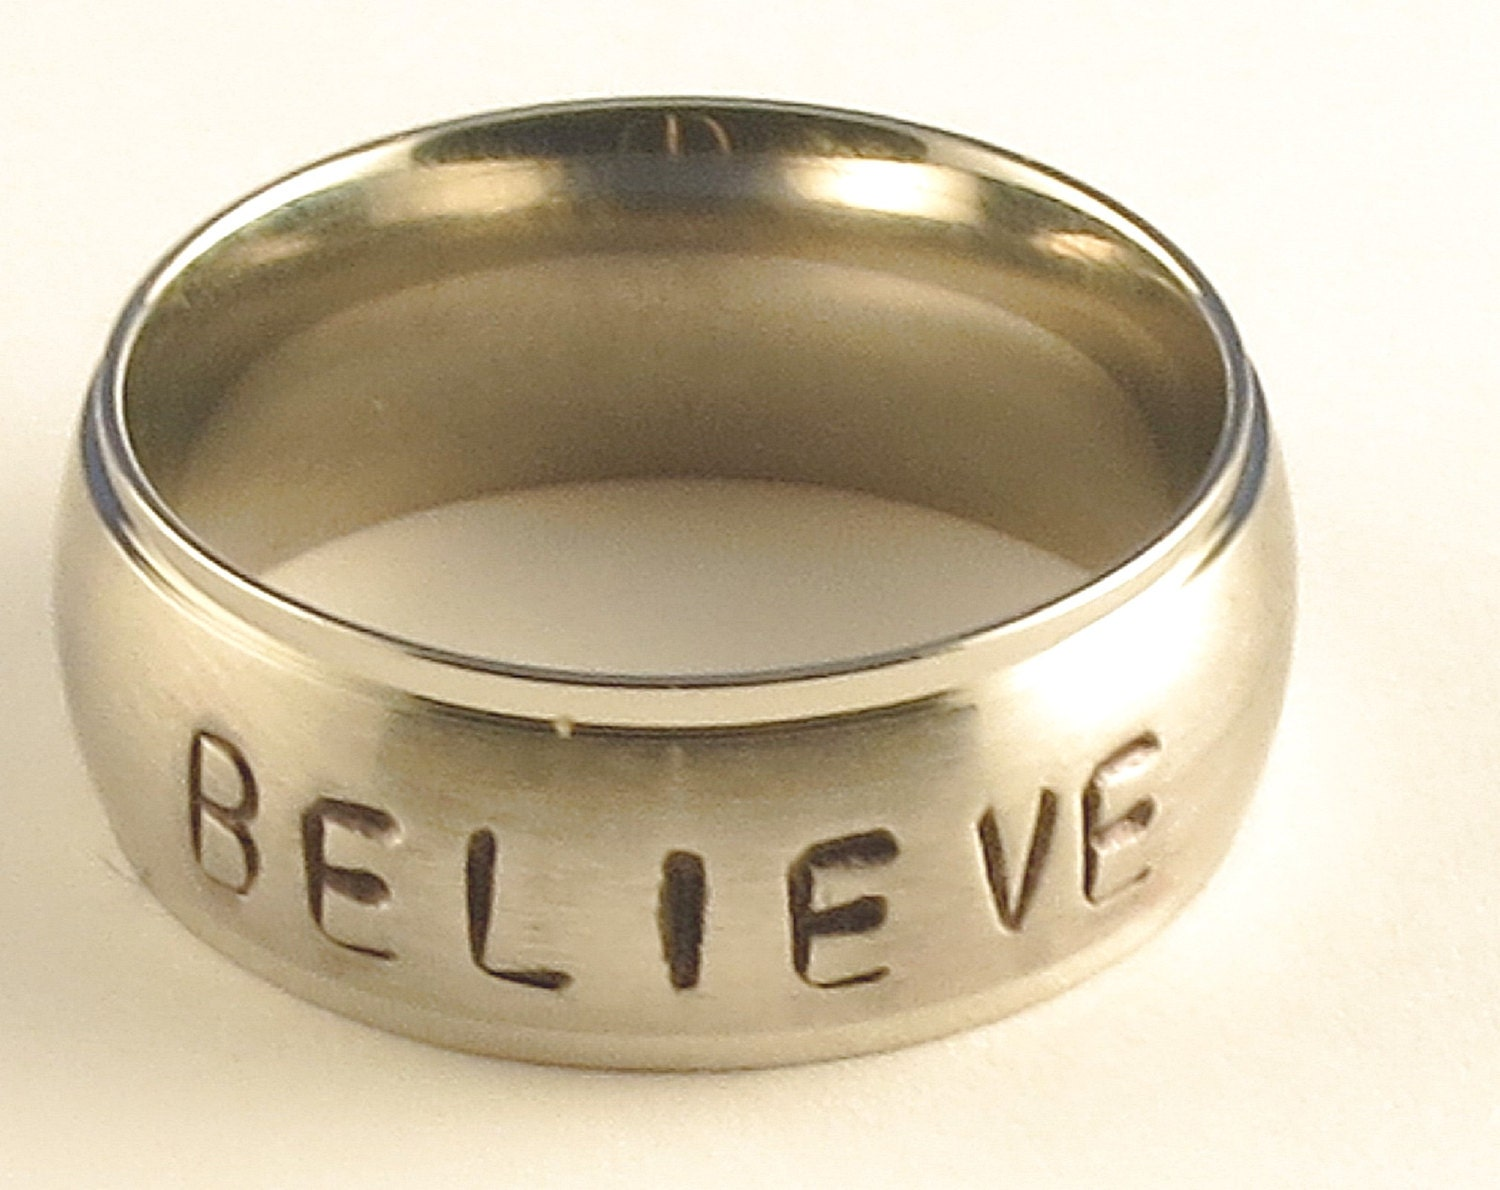 BELIEVE Stainless Steel Tri-Band Brushed Dome Comfort Fit Name Ring 8mm